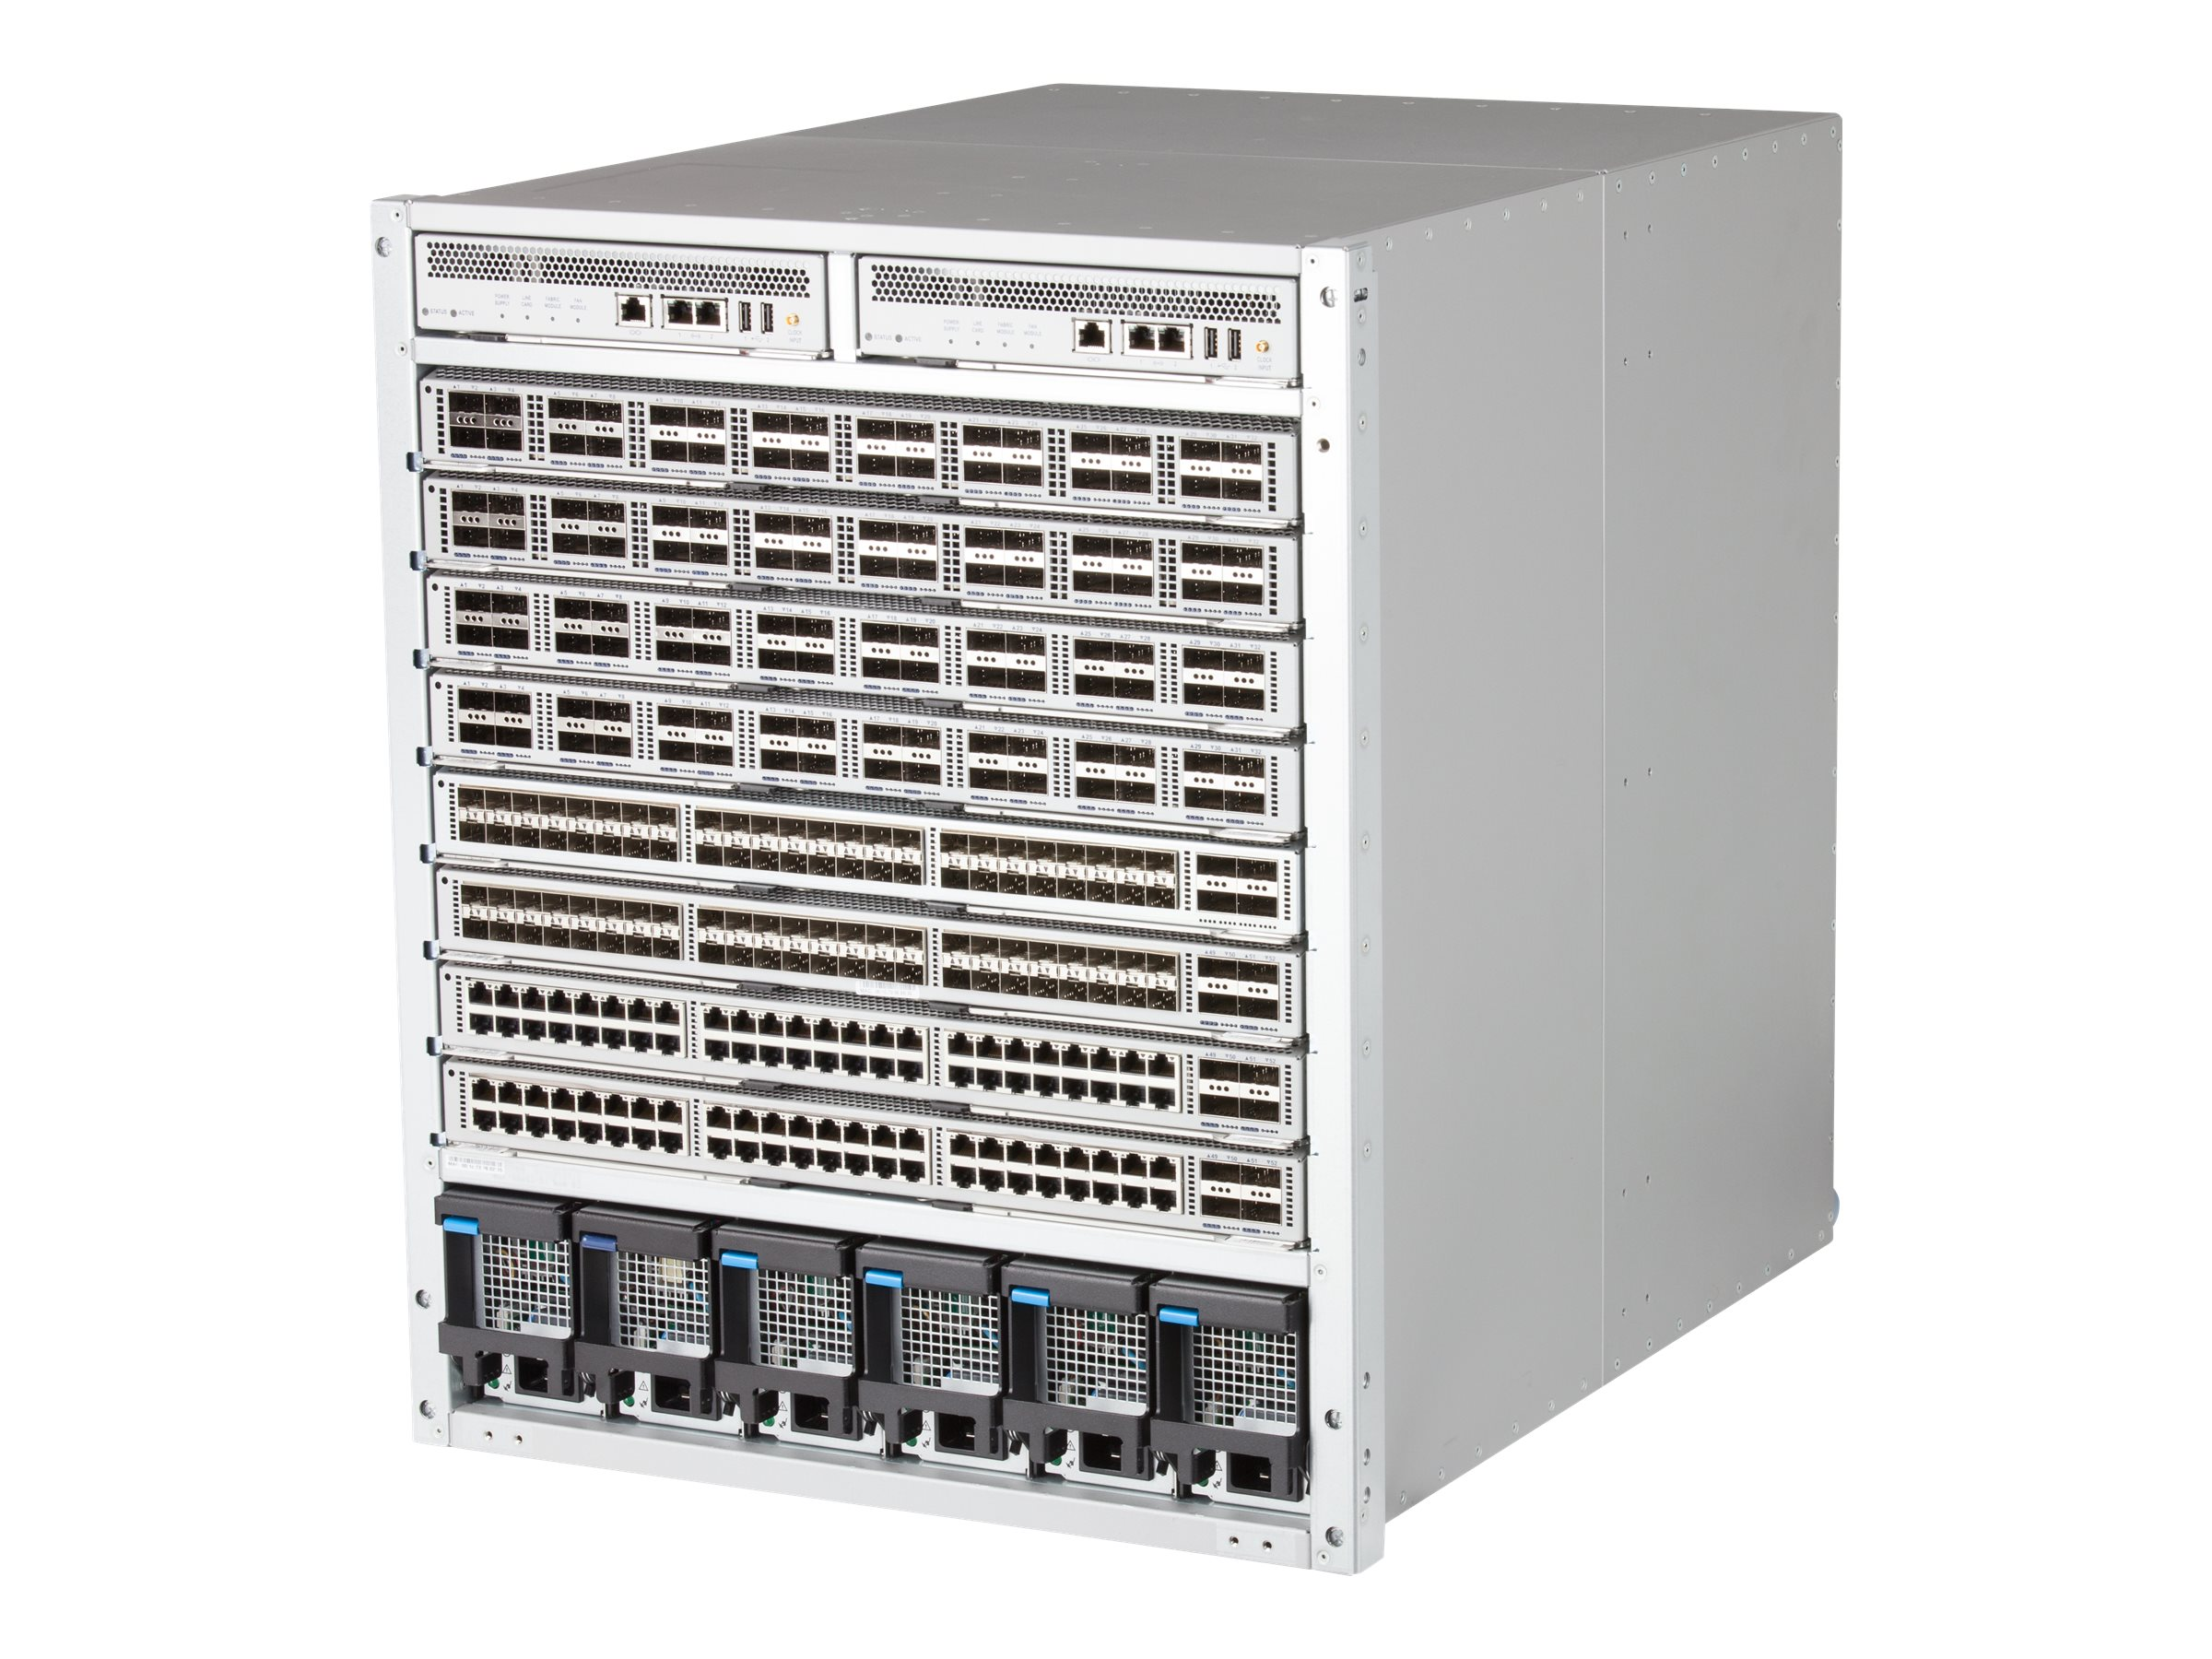 Arista 7308X - switch - managed - rack-mountable - with Supervisor Module (DCS-7300-SUP), 4 x Fabric-X (integrated fans…